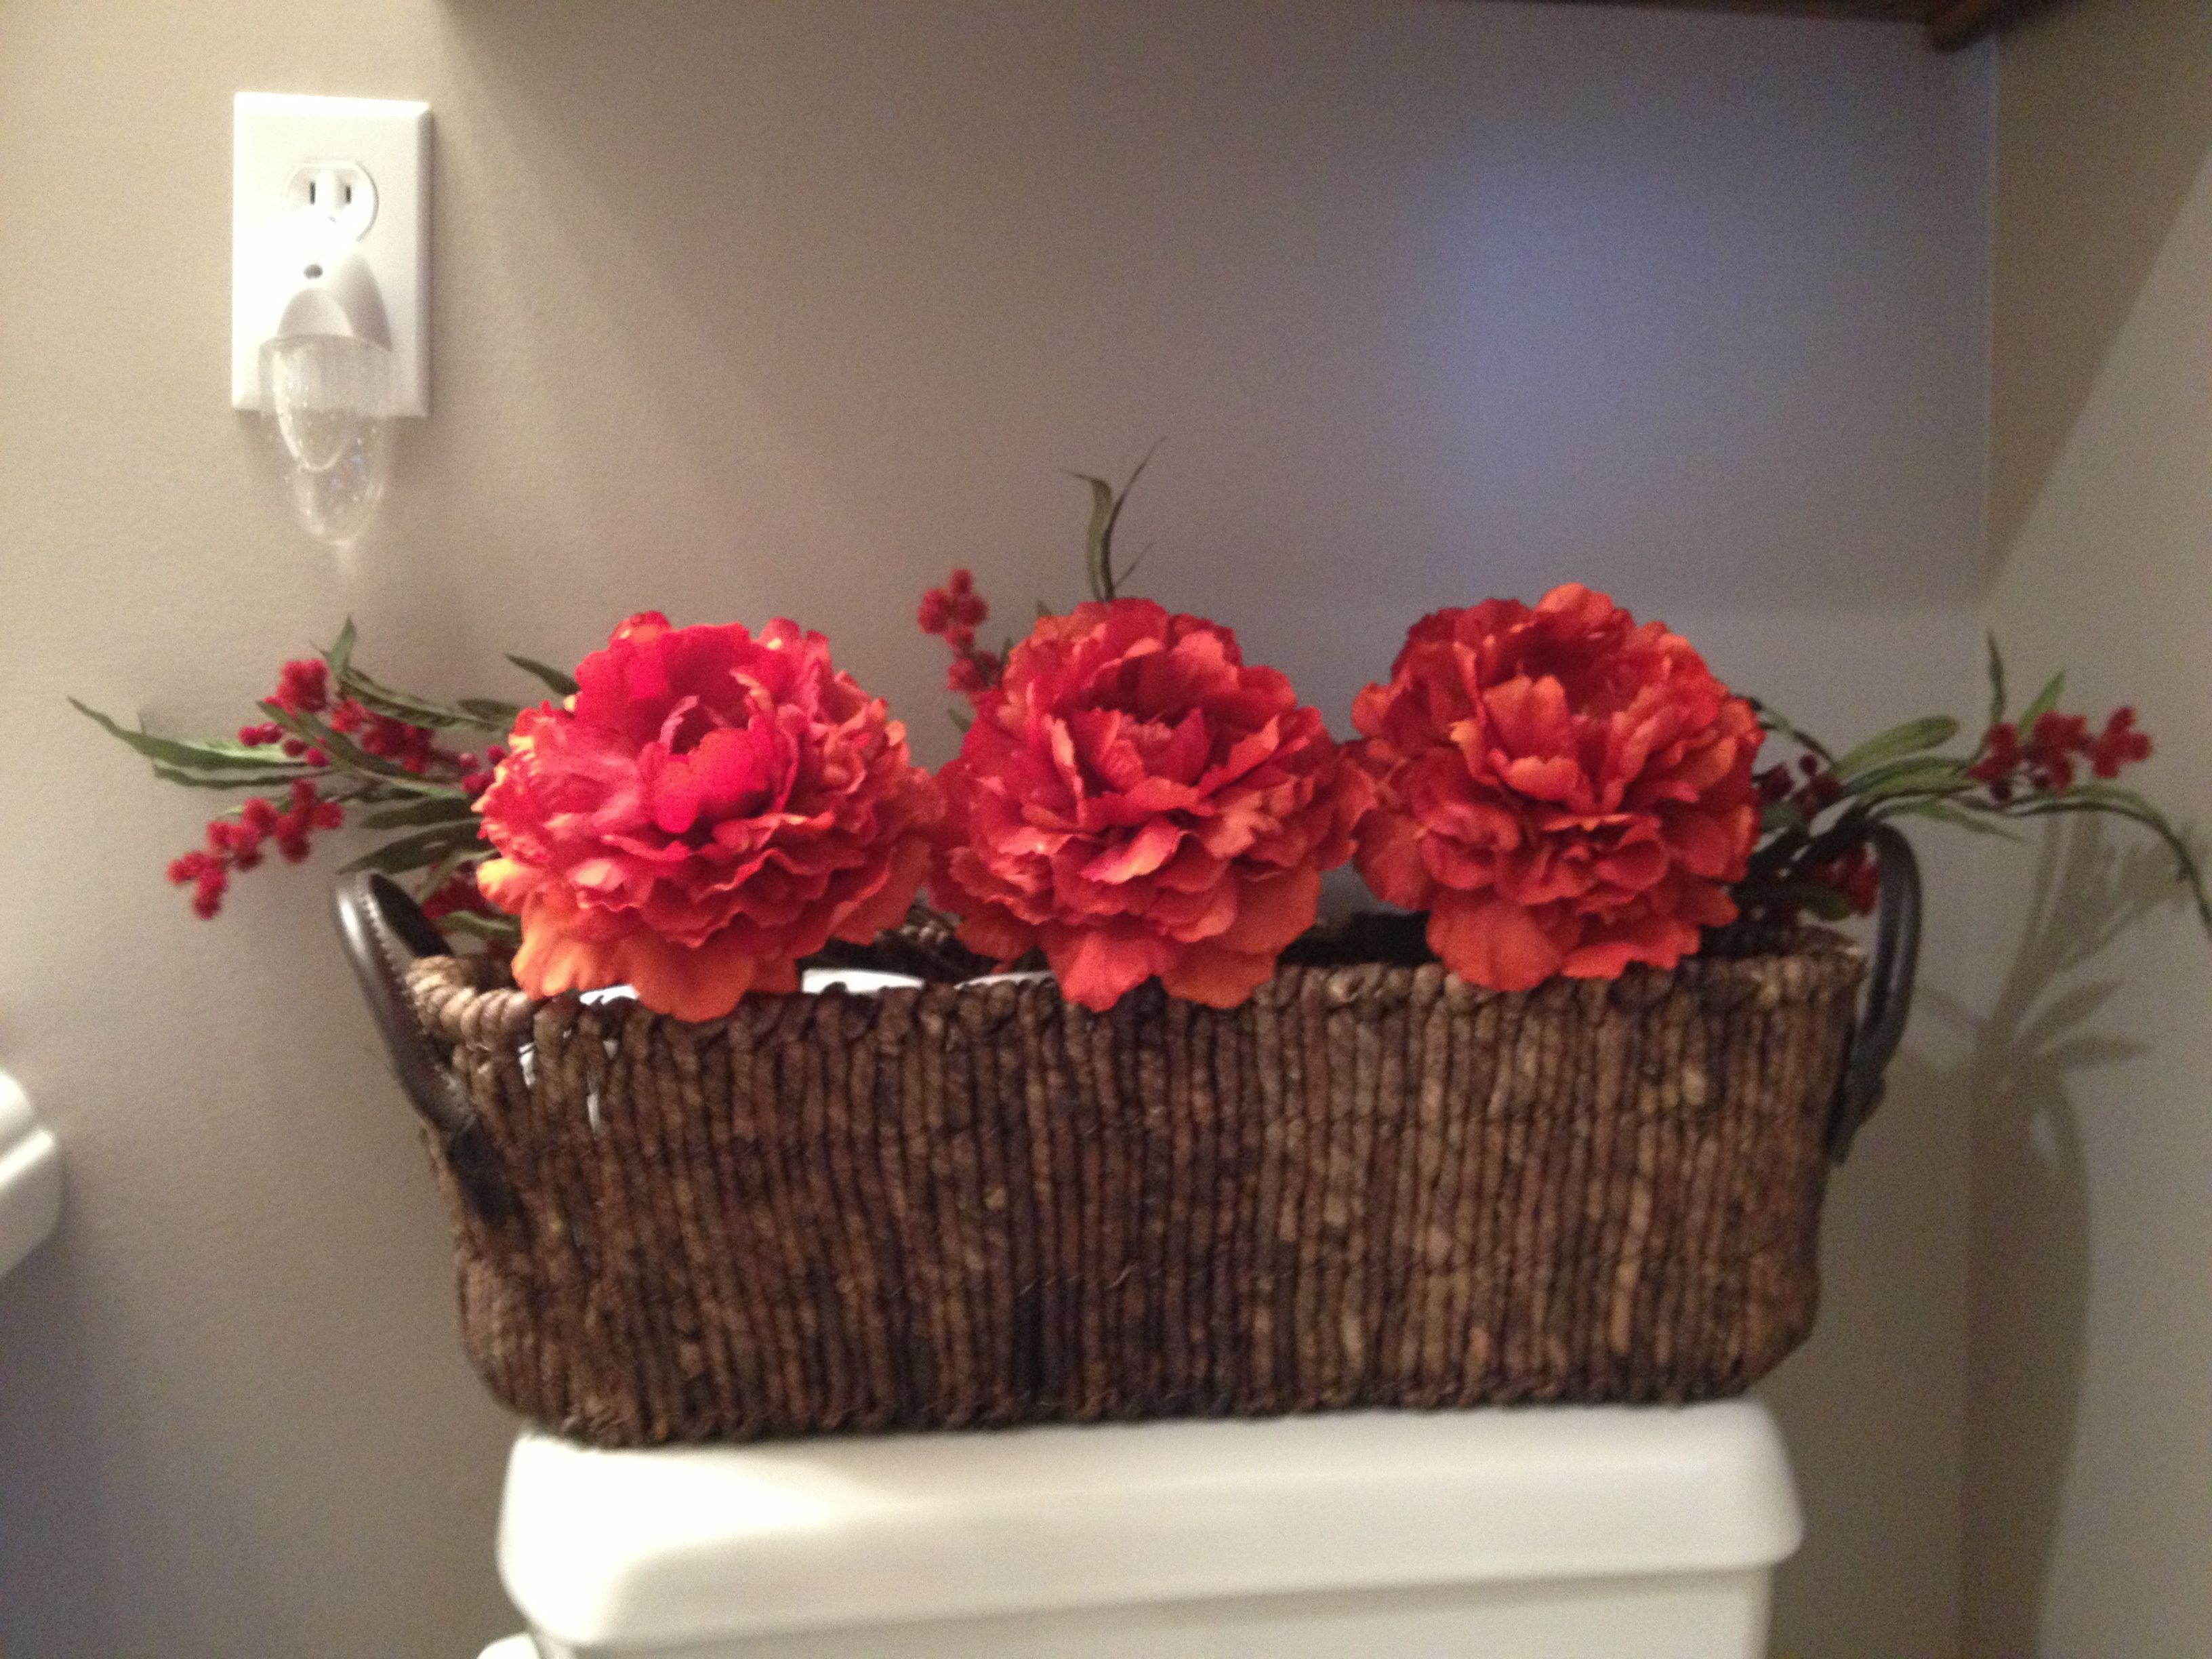 Small Bathroom Storage For Extra Toilet Paper. Stick A Flower In It!